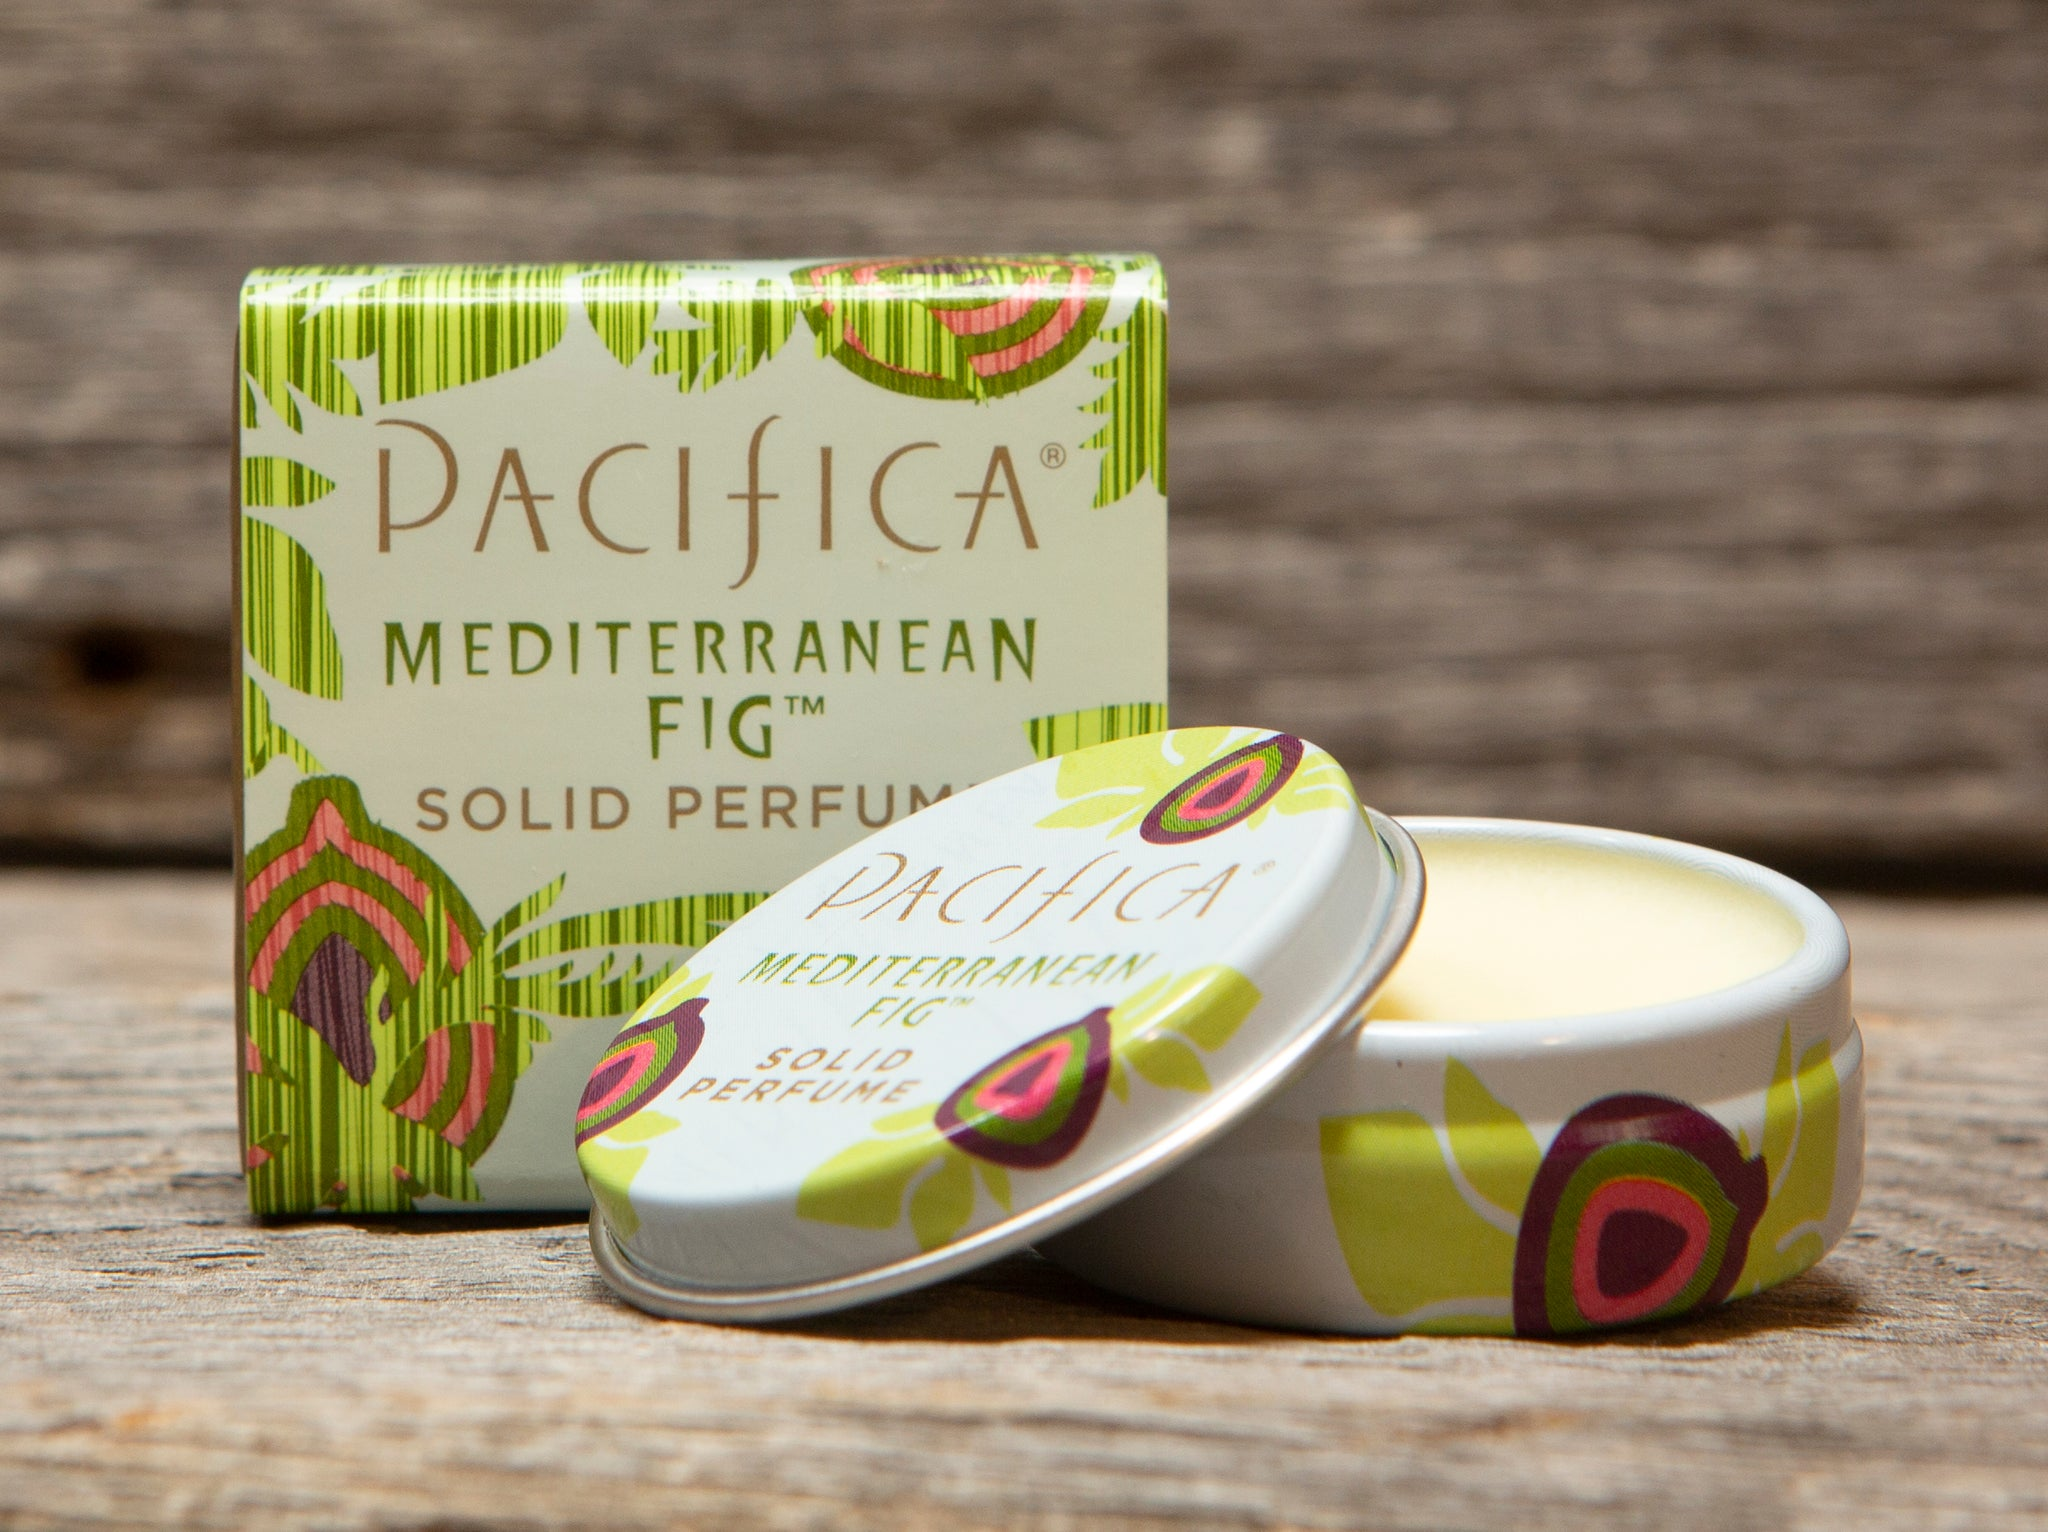 Pacifica Mediterranean Fig Solid Perfume by Pacifica